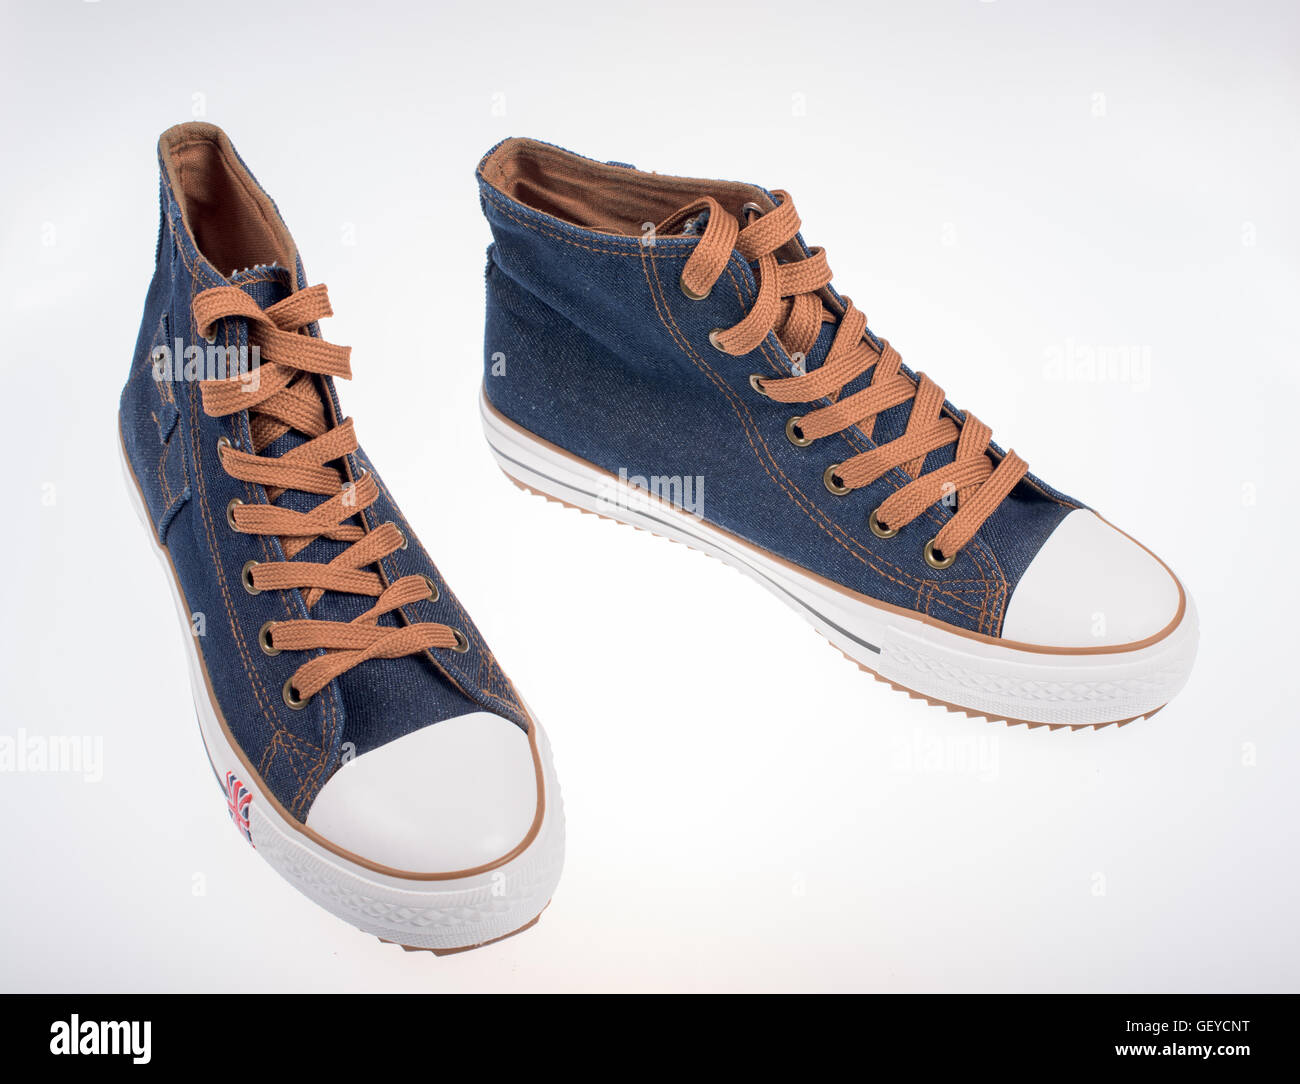 Sneakers made of denim on a white background - Stock Image